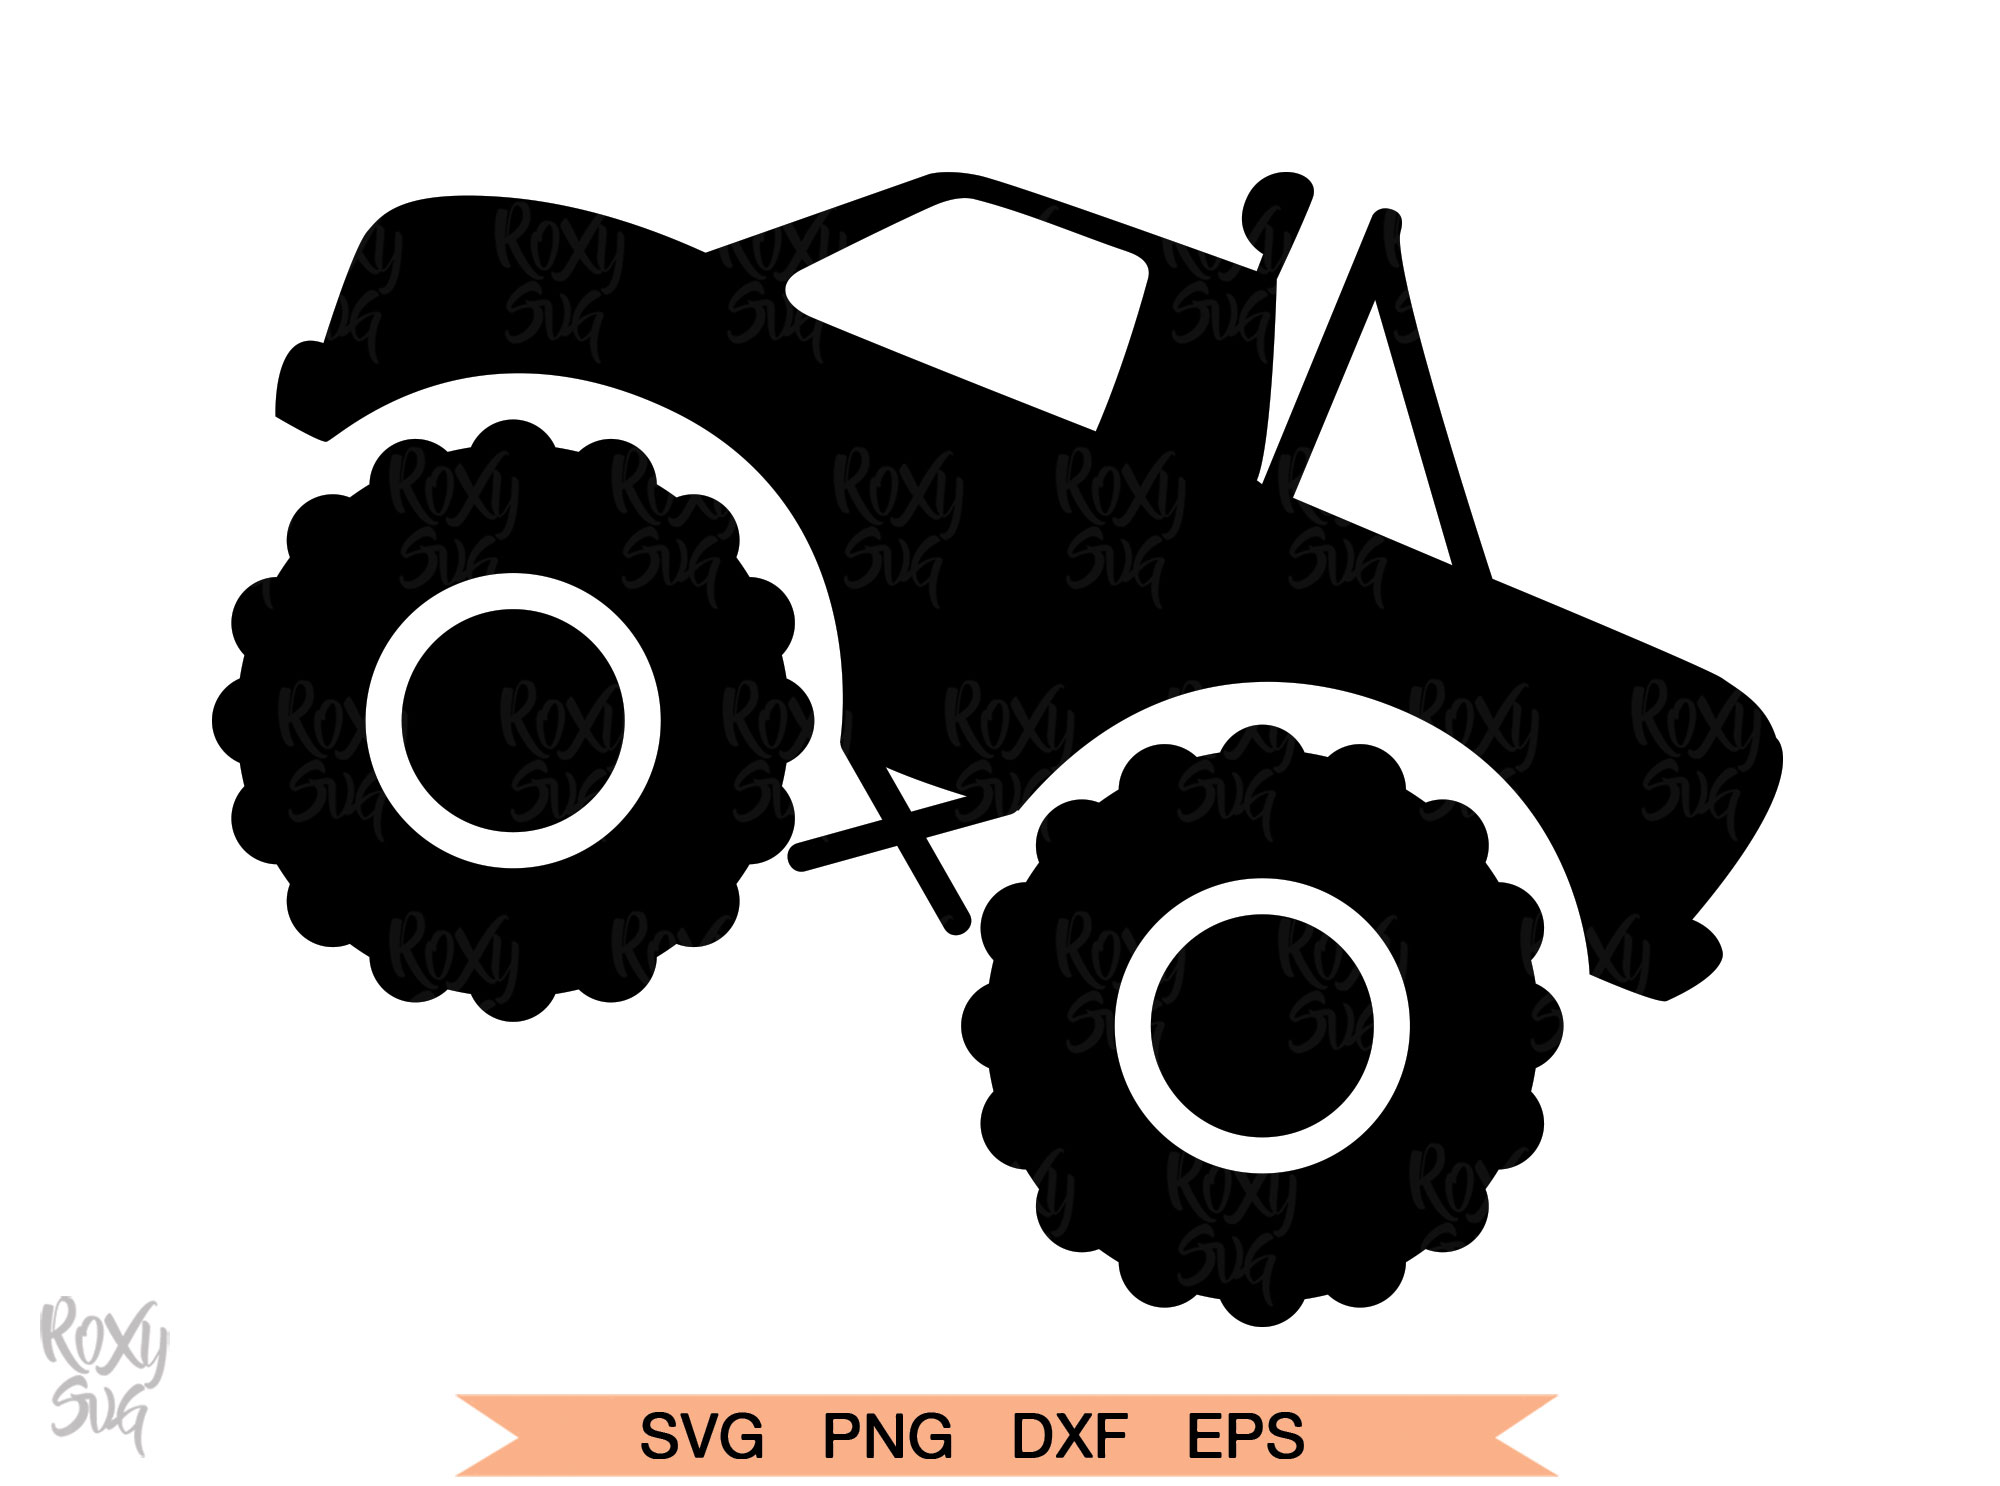 Download Free Monster Truck Silhouette Graphic By Roxysvg26 Creative Fabrica for Cricut Explore, Silhouette and other cutting machines.